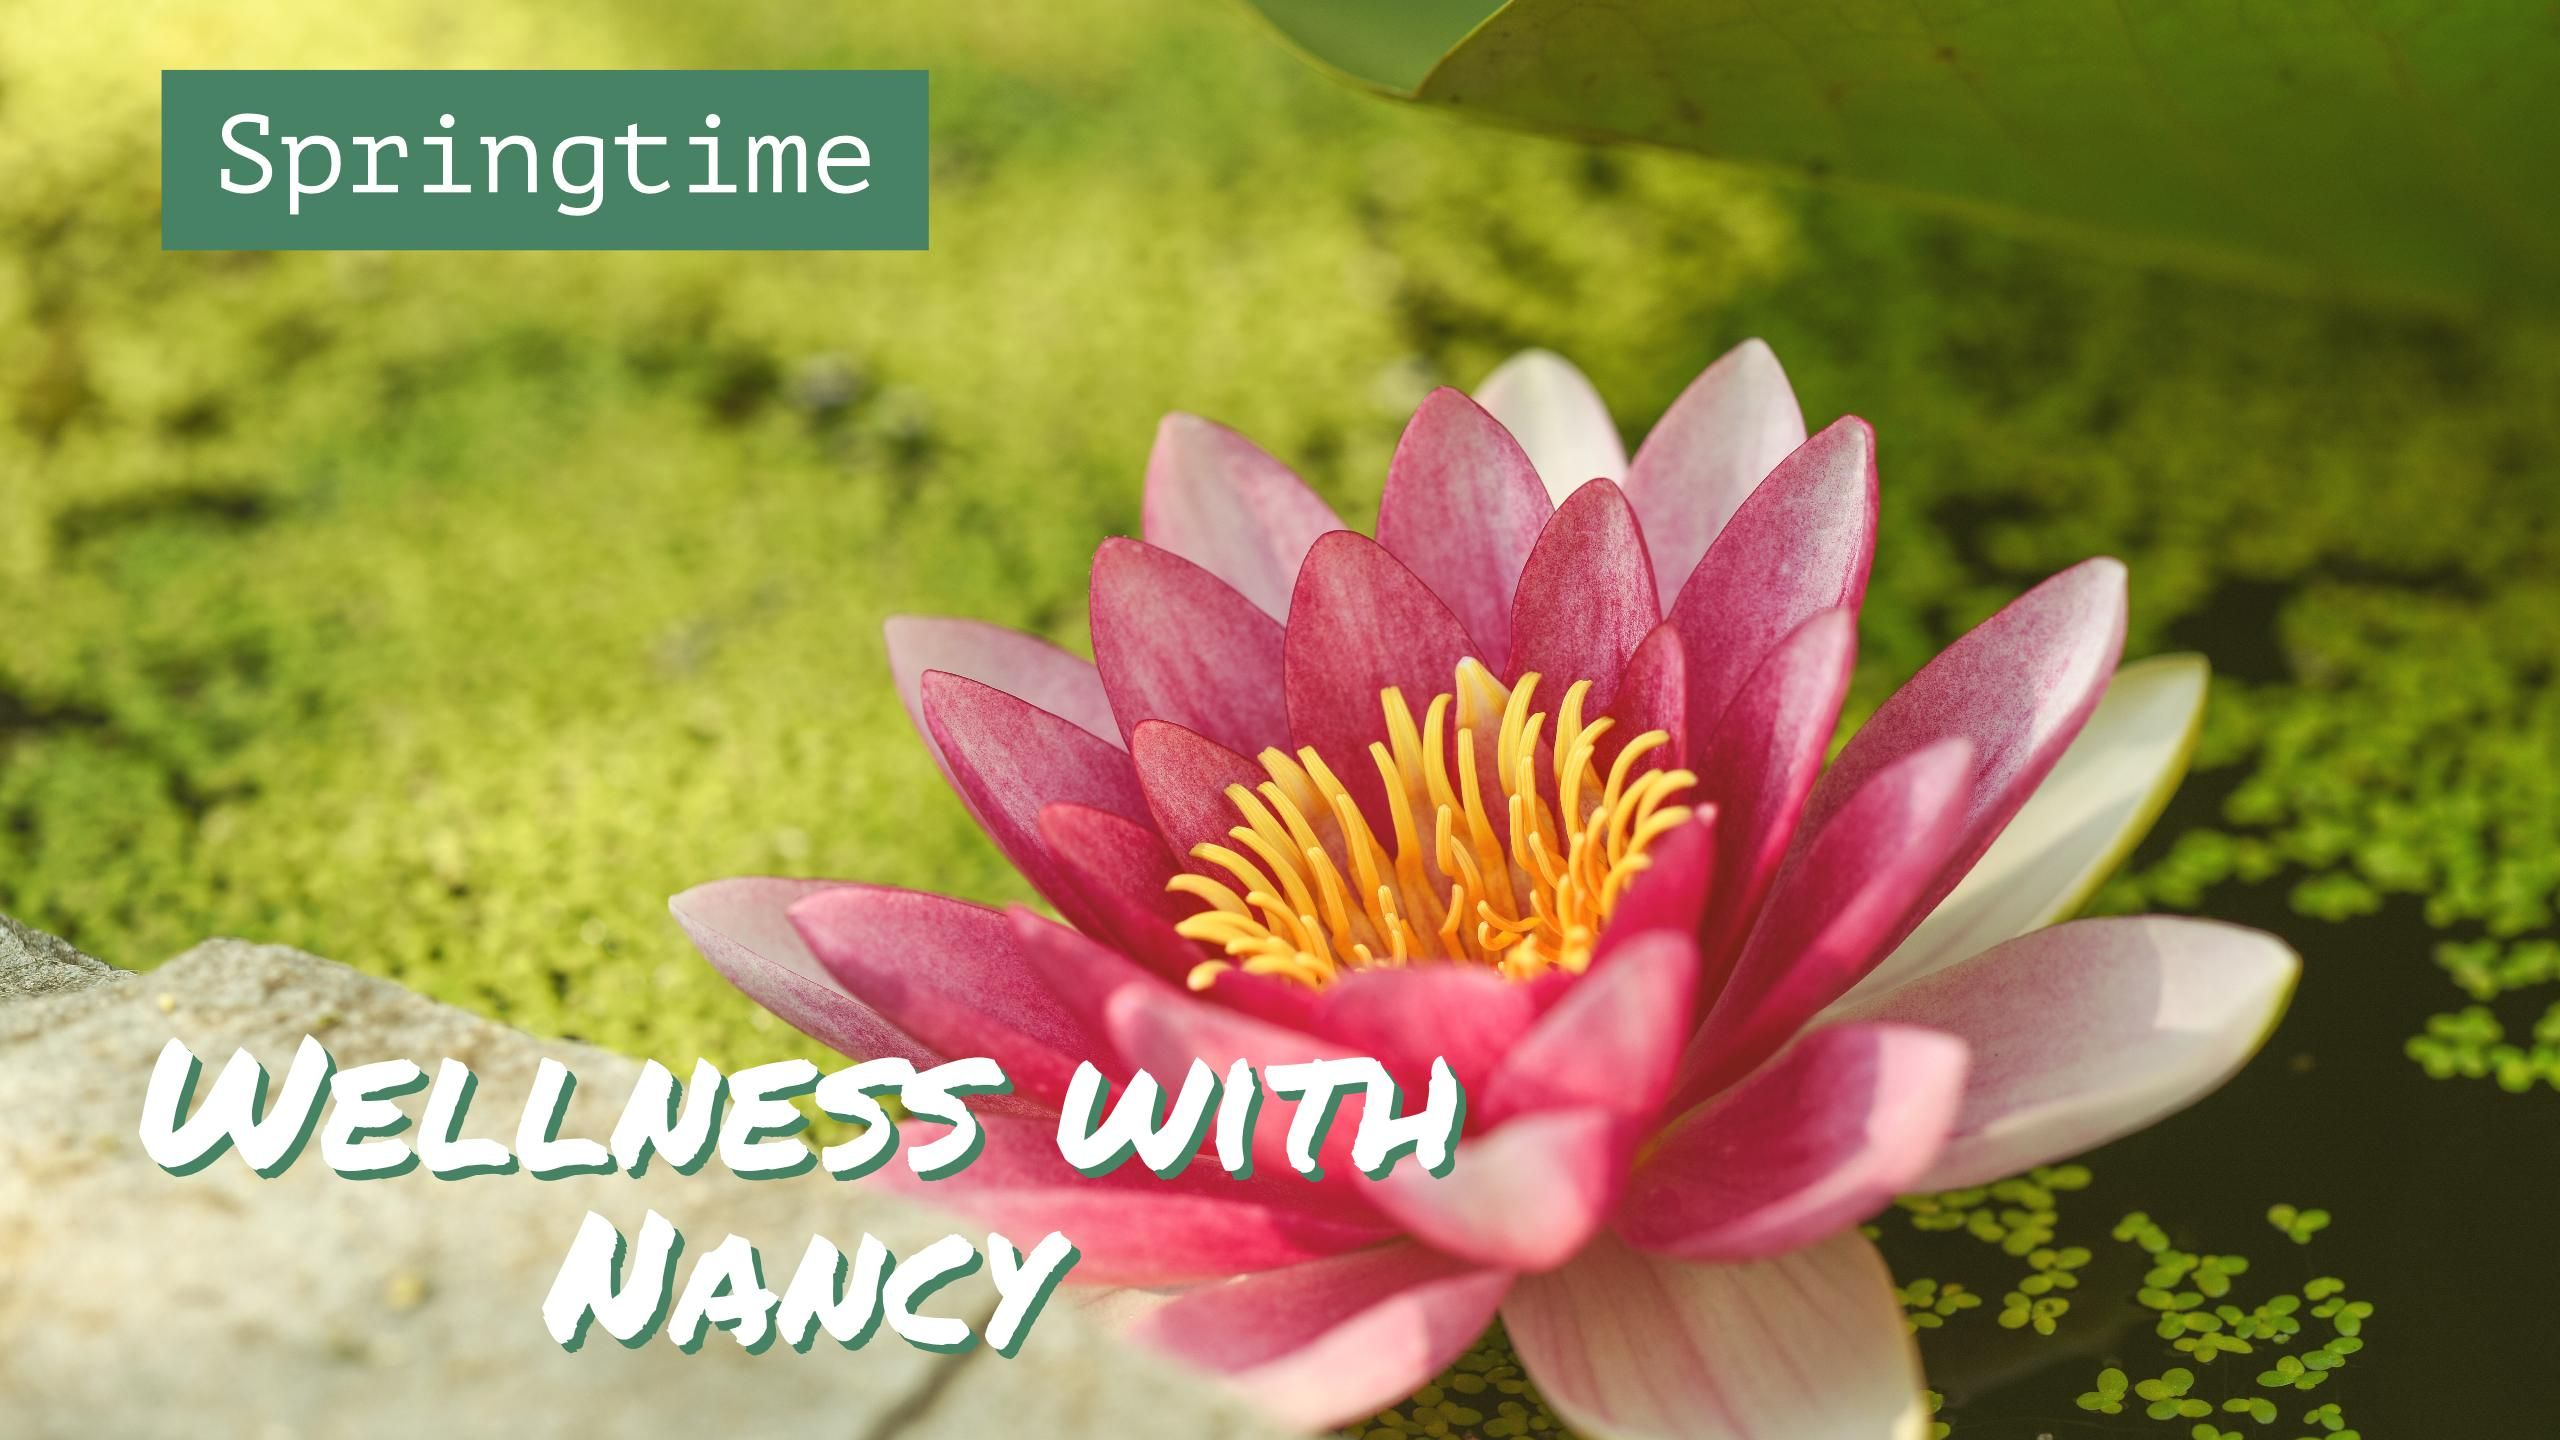 Mentoring With Nancy Awaken With Light Lily Flower Wallpaper Lily Wallpaper Lotus Flower Wallpaper Coolest lily flower wallpaper images